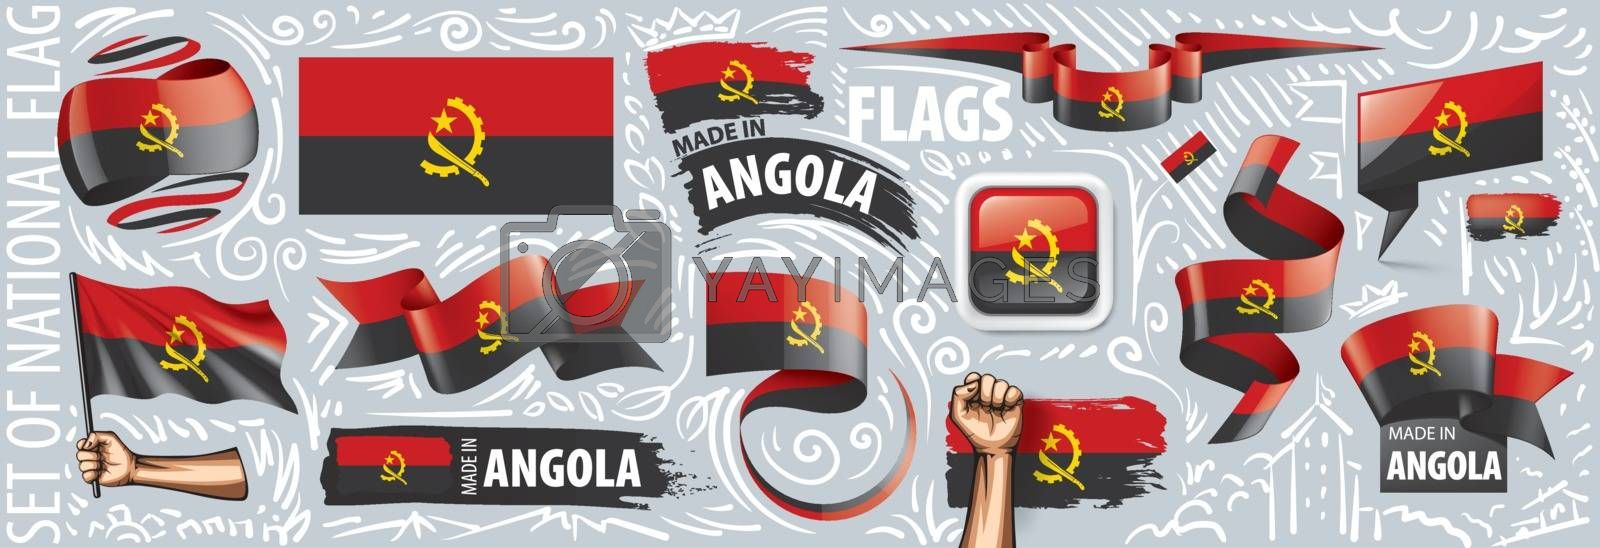 Vector set of the national flag of Angola in various creative designs.